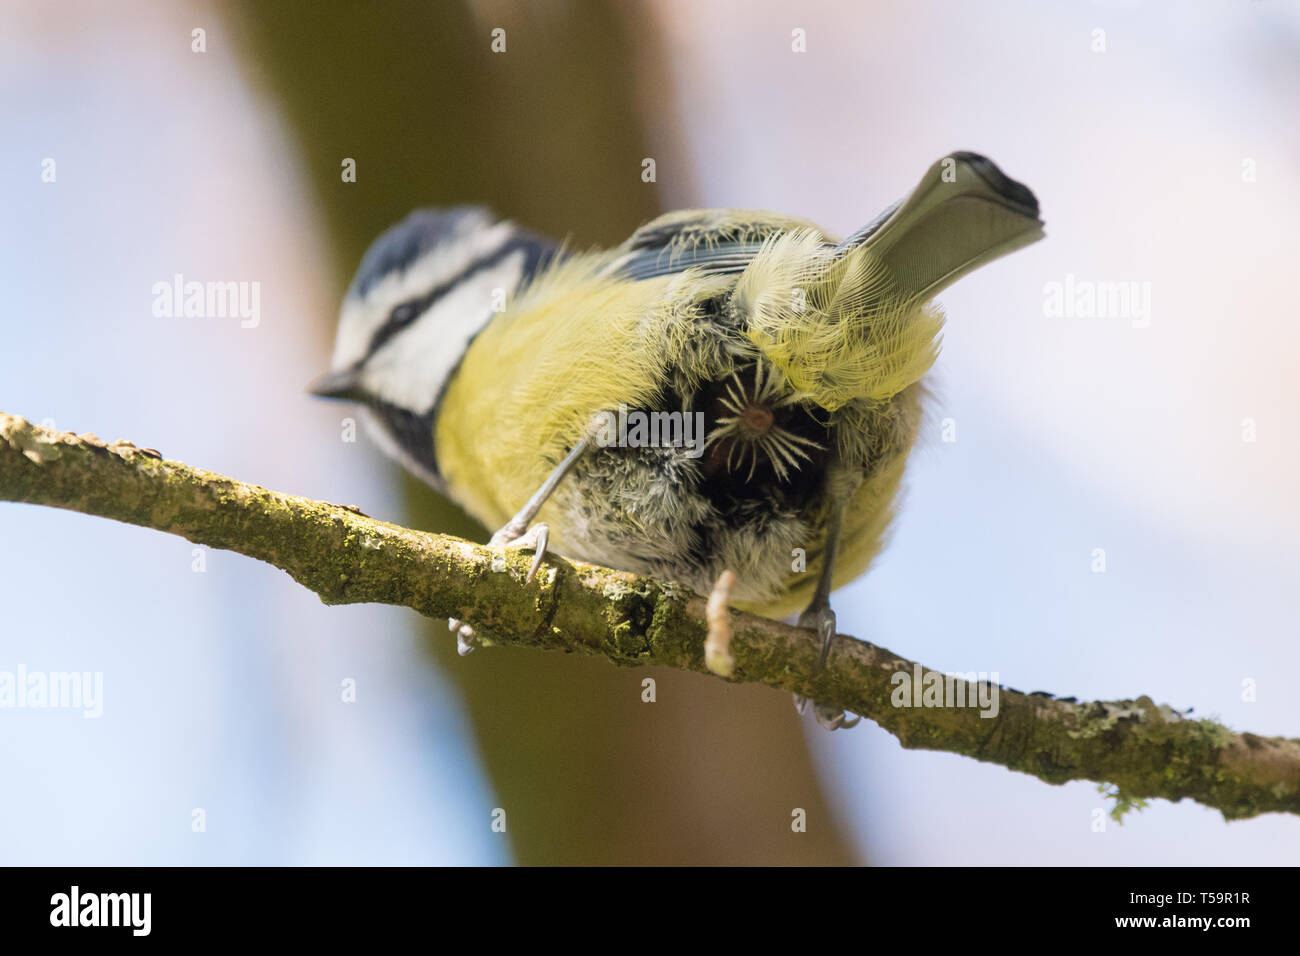 blue tit cloaca visible as it defecates Stock Photo